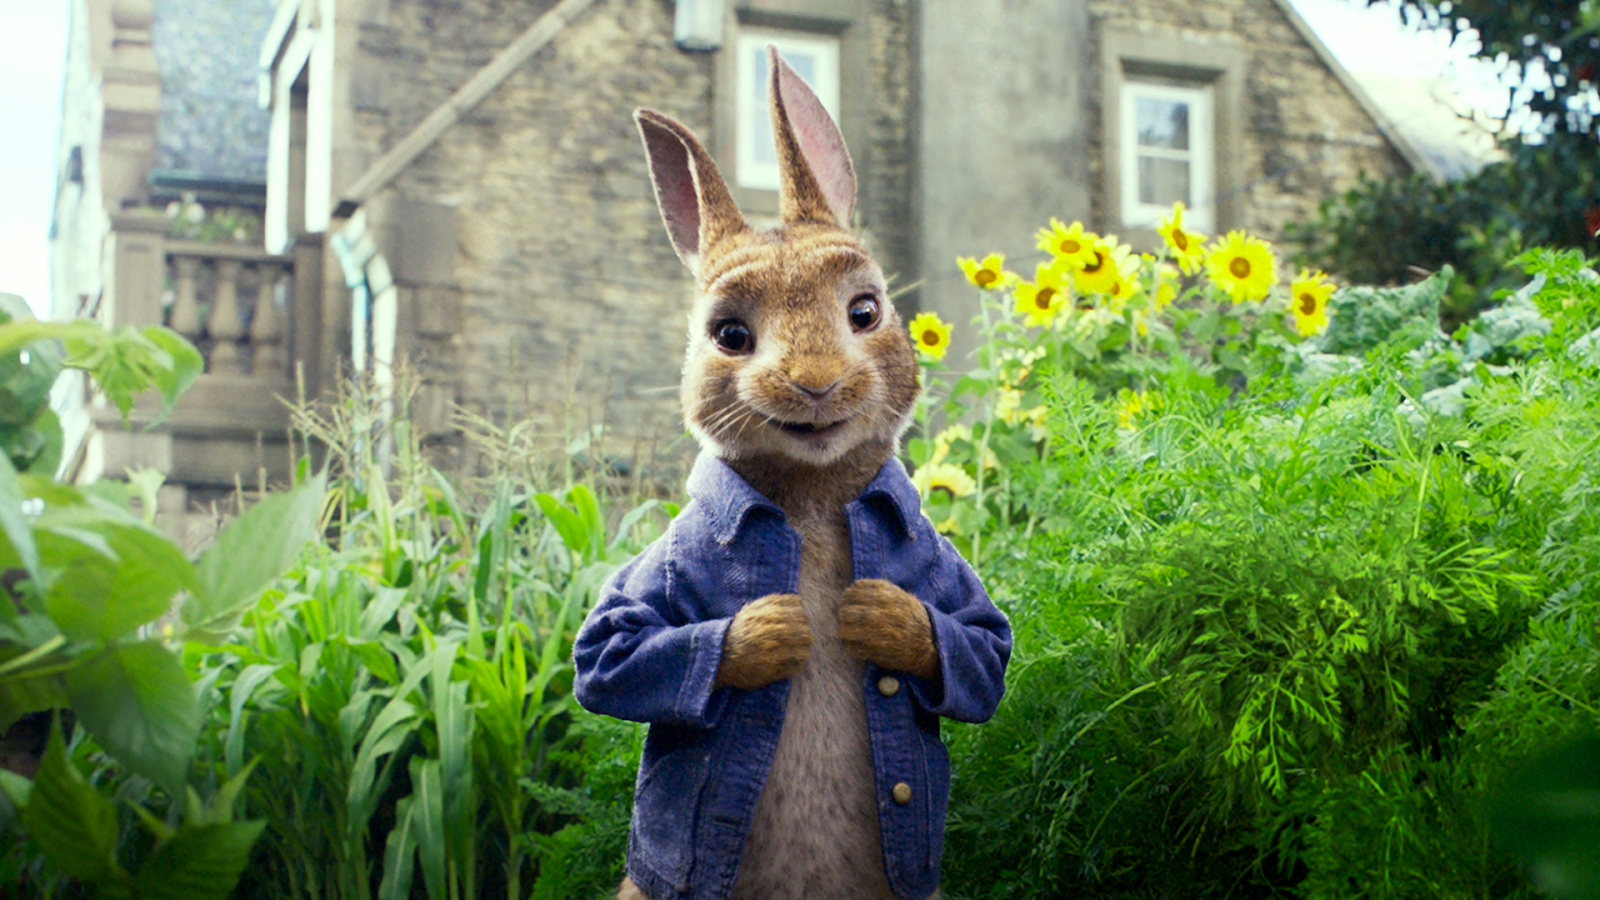 1600x900 Peter Rabbit - 1920x1080 Wallpapers - Full HD Backgrounds